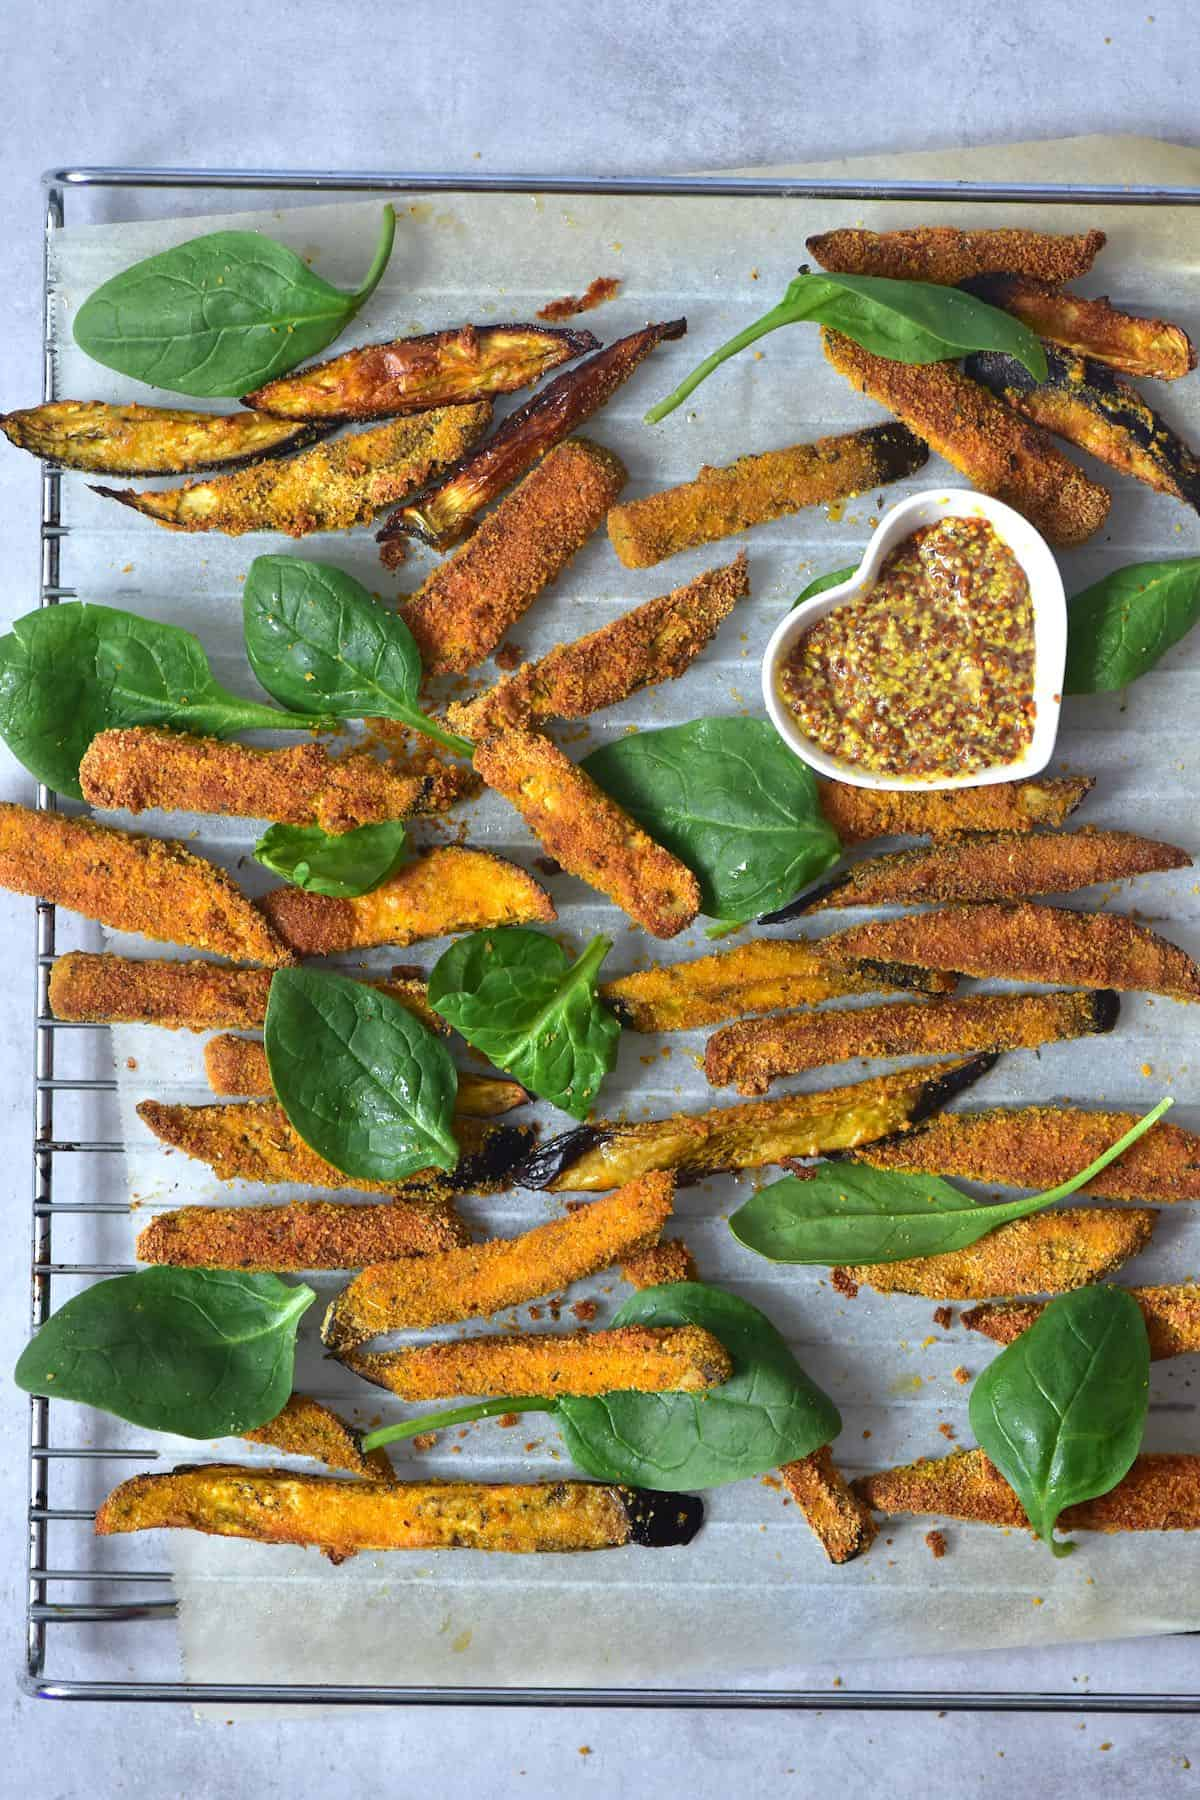 Baked eggplant fries on a baking tray with spinach leaves and mustard